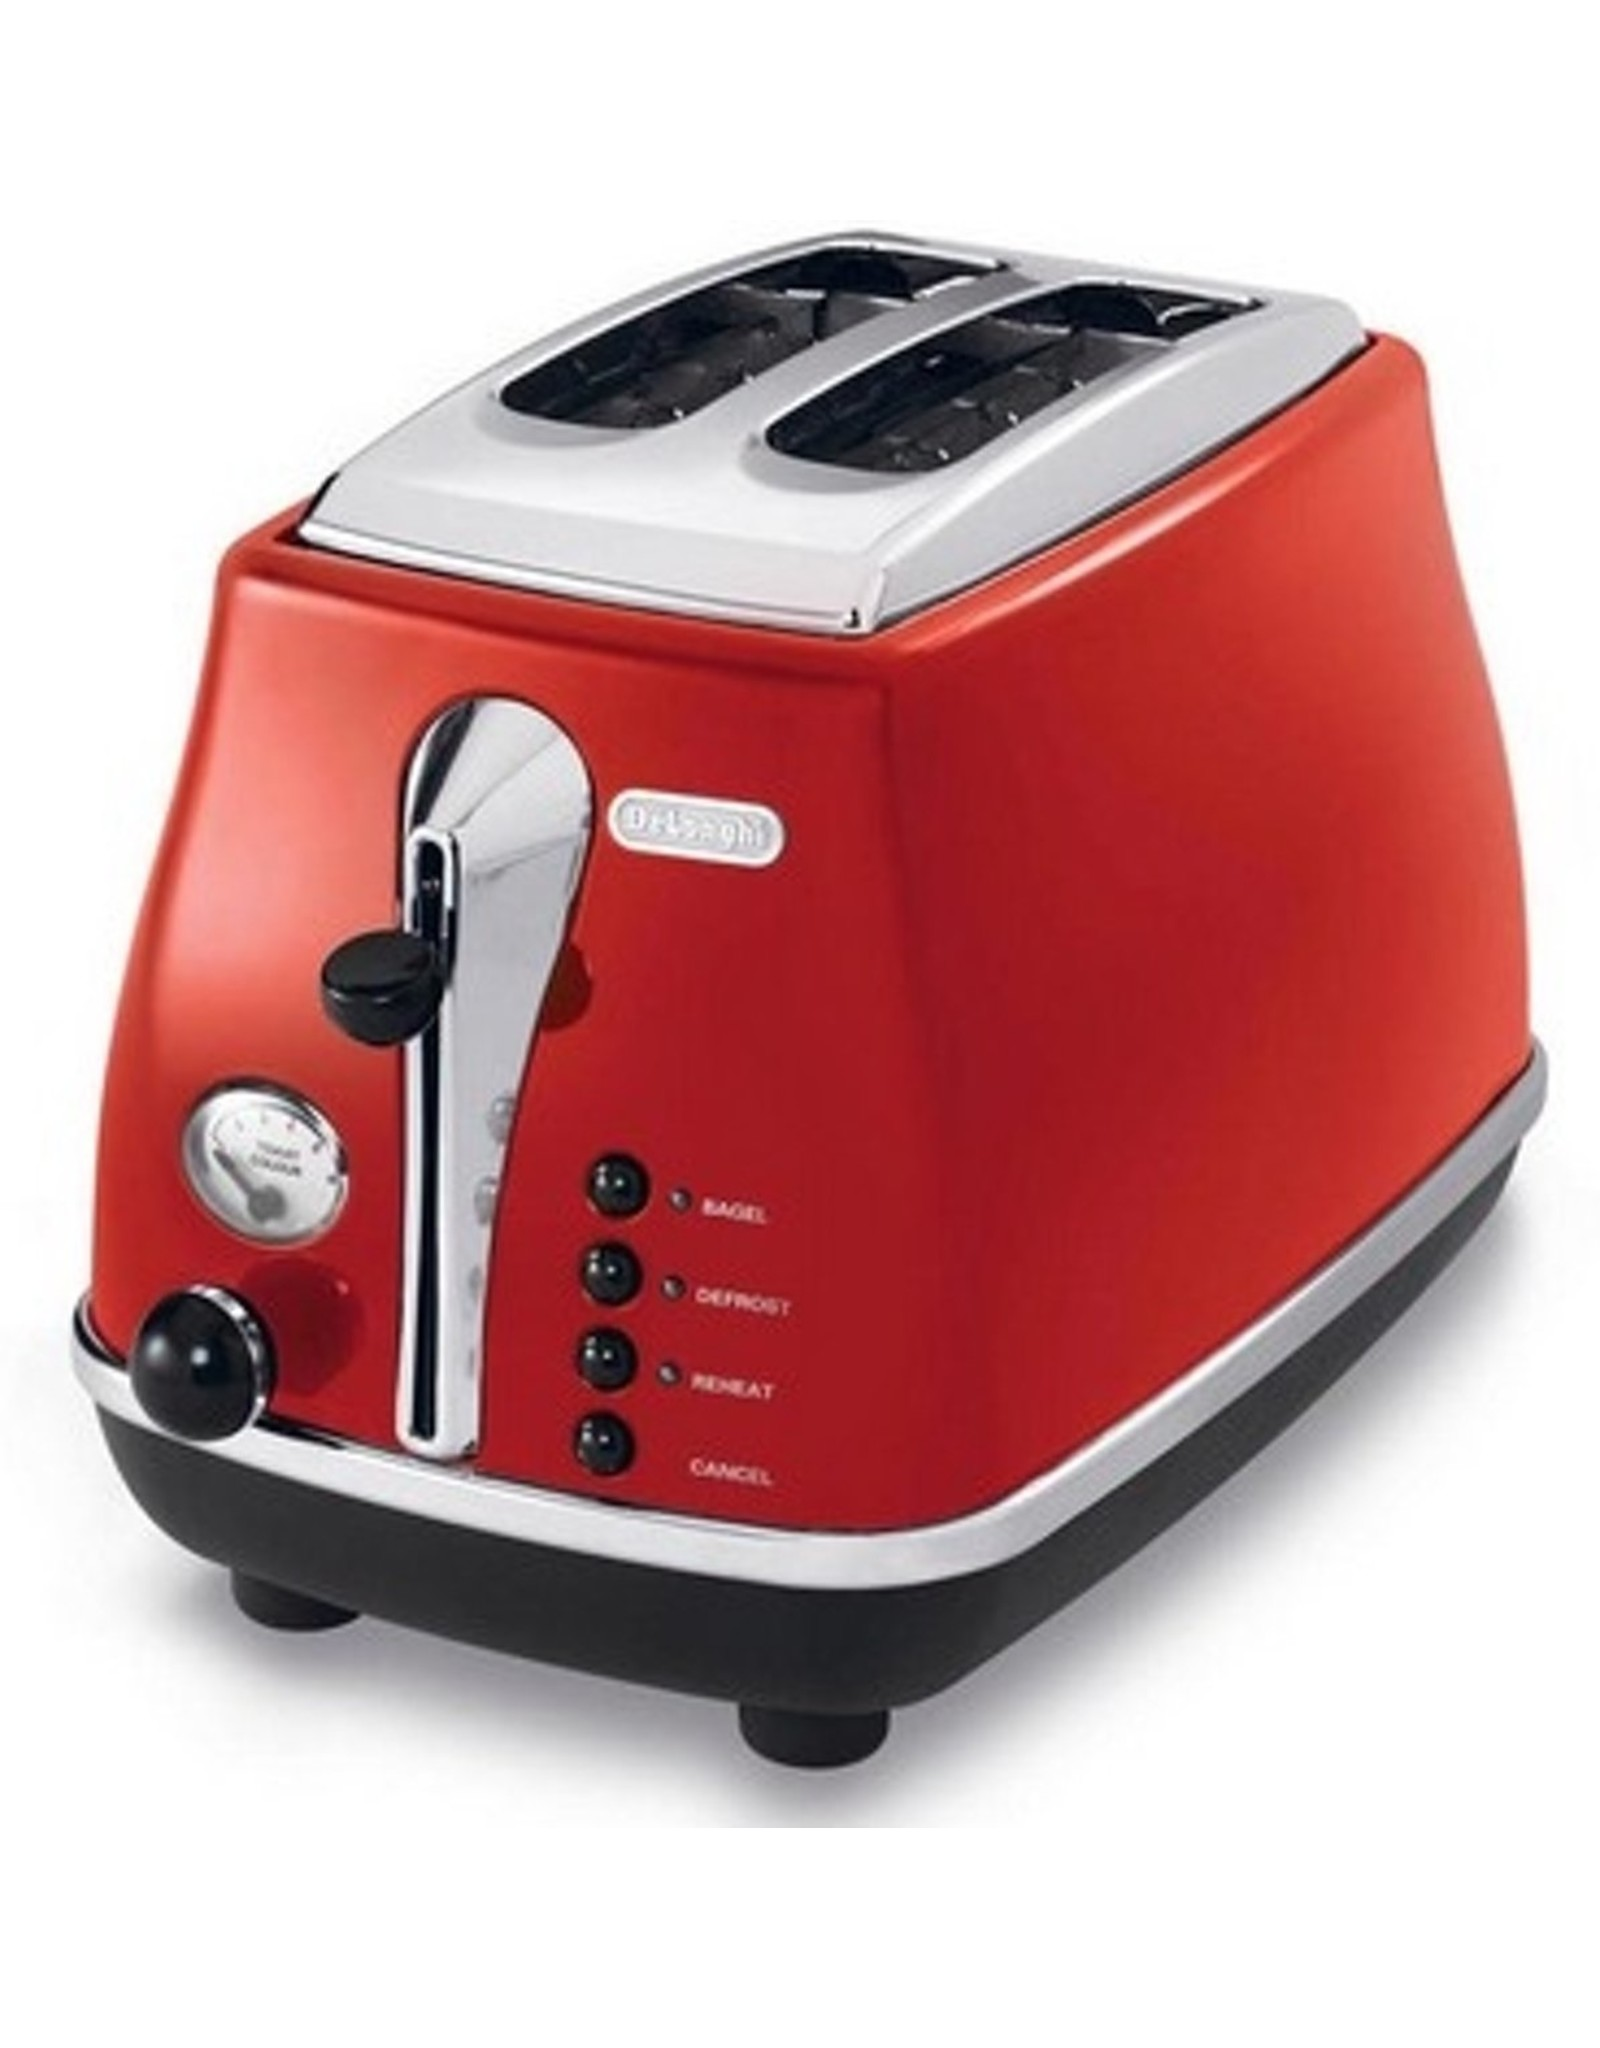 DeLonghi DeLonghi Icona CTO 2003.R broodrooster 2 snede(n) Rood 900 W